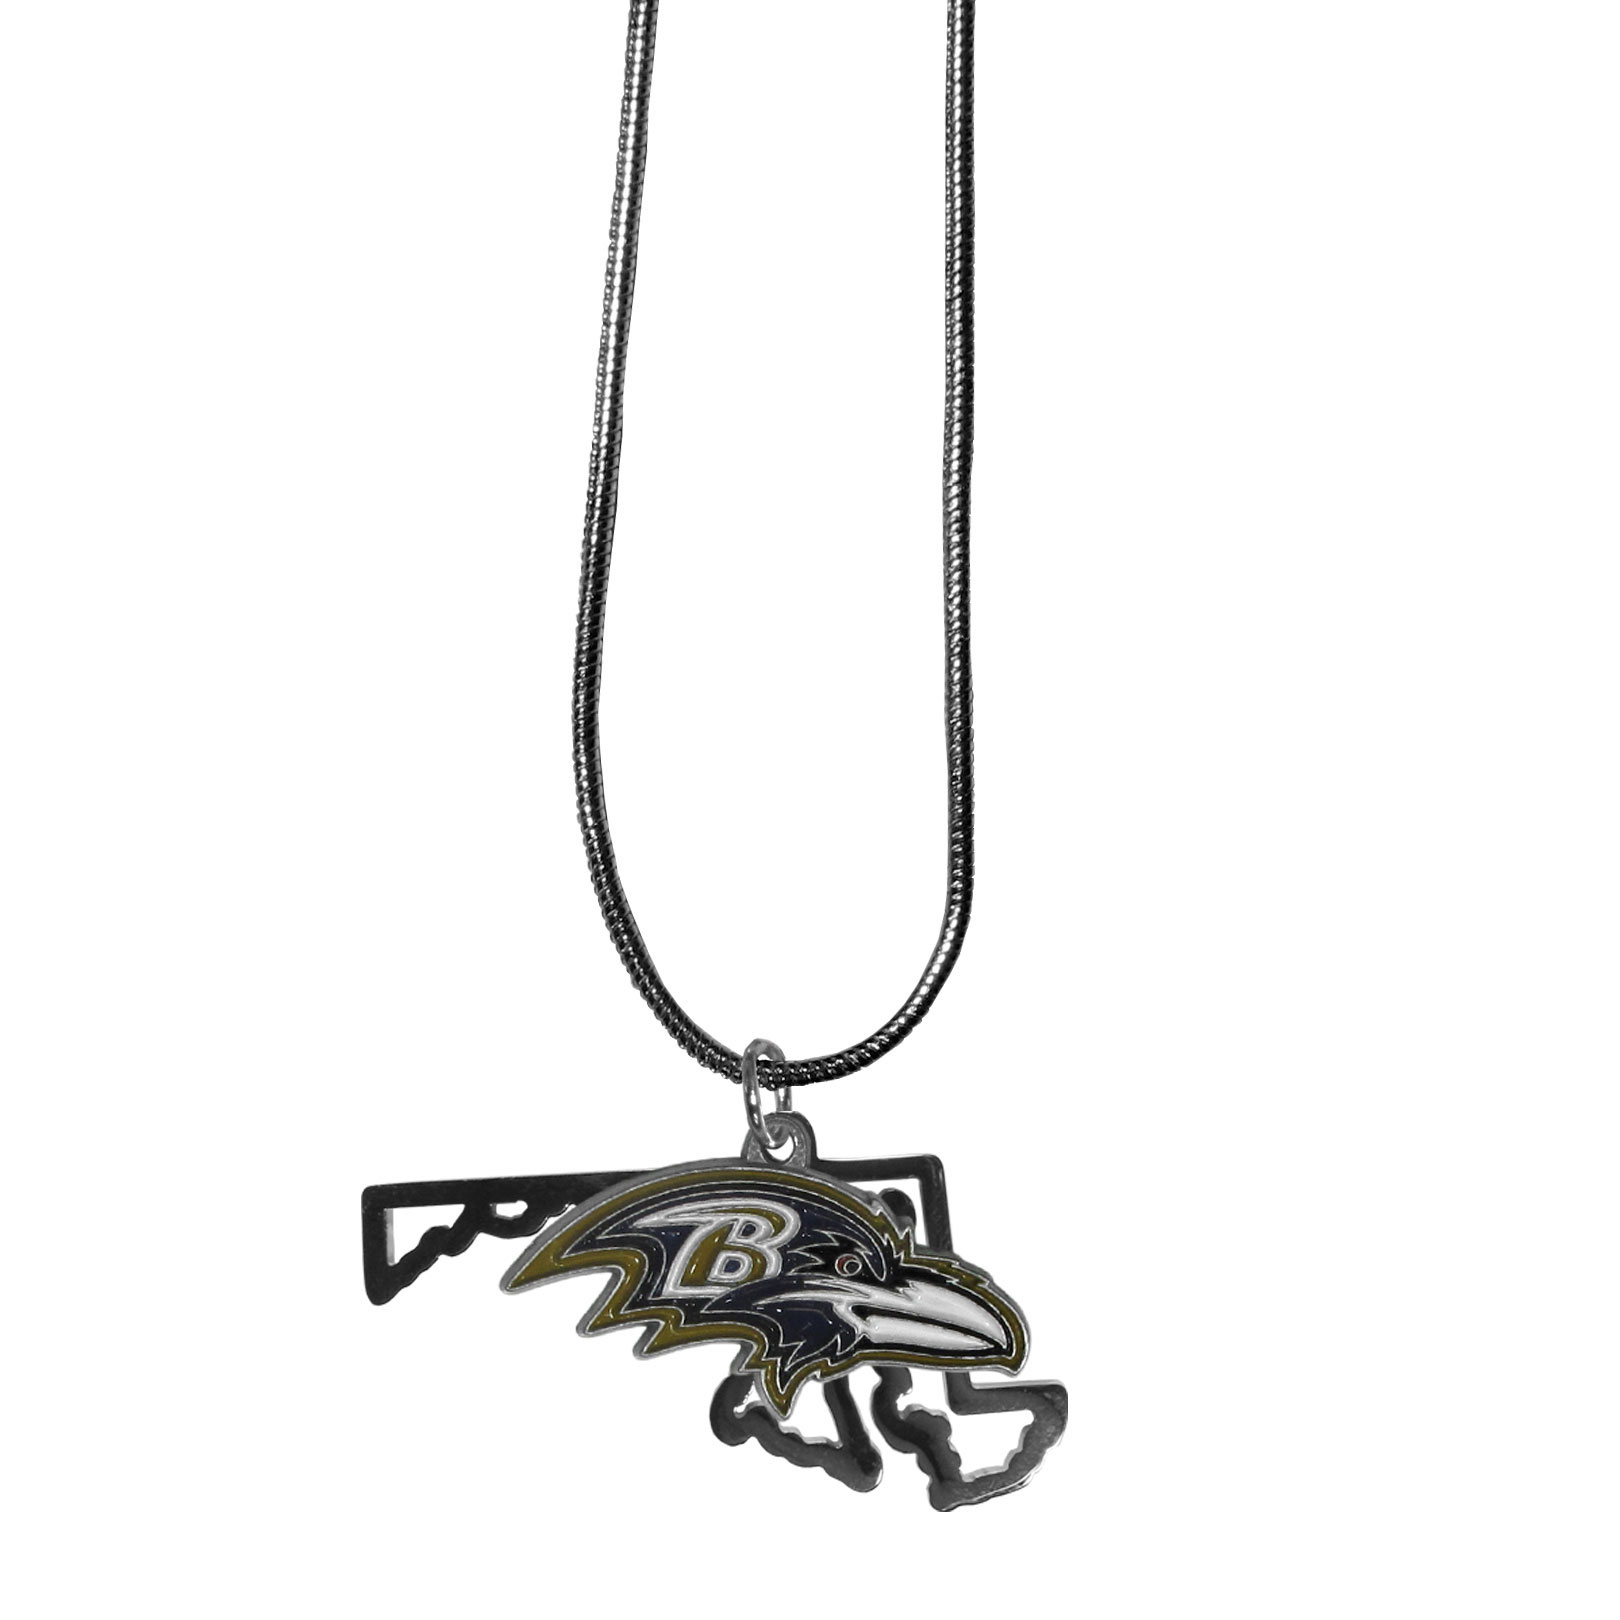 Baltimore Ravens State Charm Necklace - Get in on the trend! State themes are a trend that just keeps getting more popular and these necklaces take the state style and give it a sporty twist with a Baltimore Ravens added to the state outline charm. The come on a snake chain that is 22 inches long.